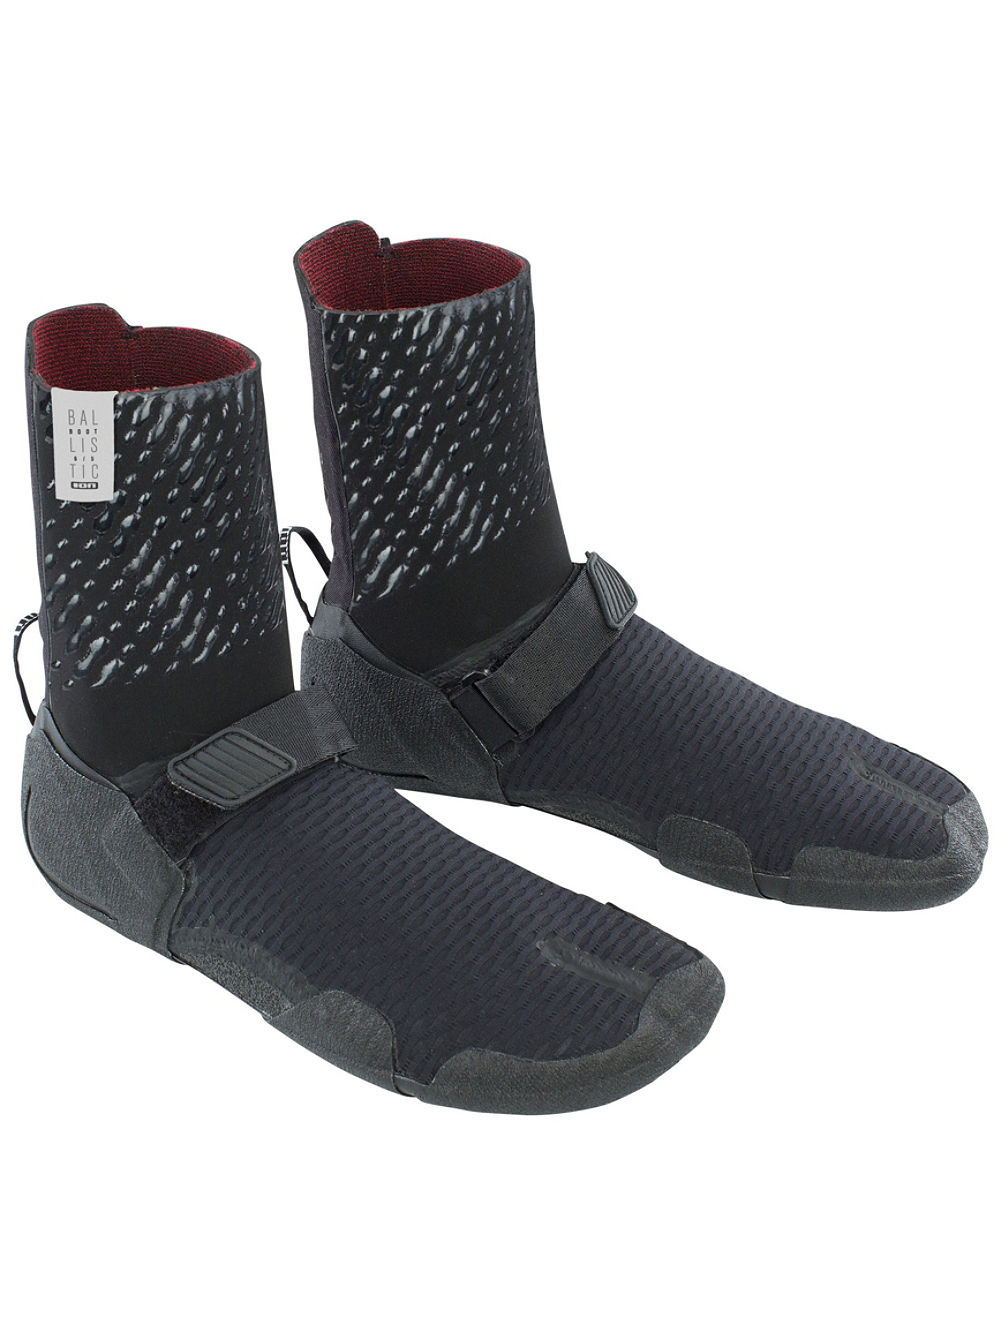 Ballistic 6/5 IS Neoprenschuhe